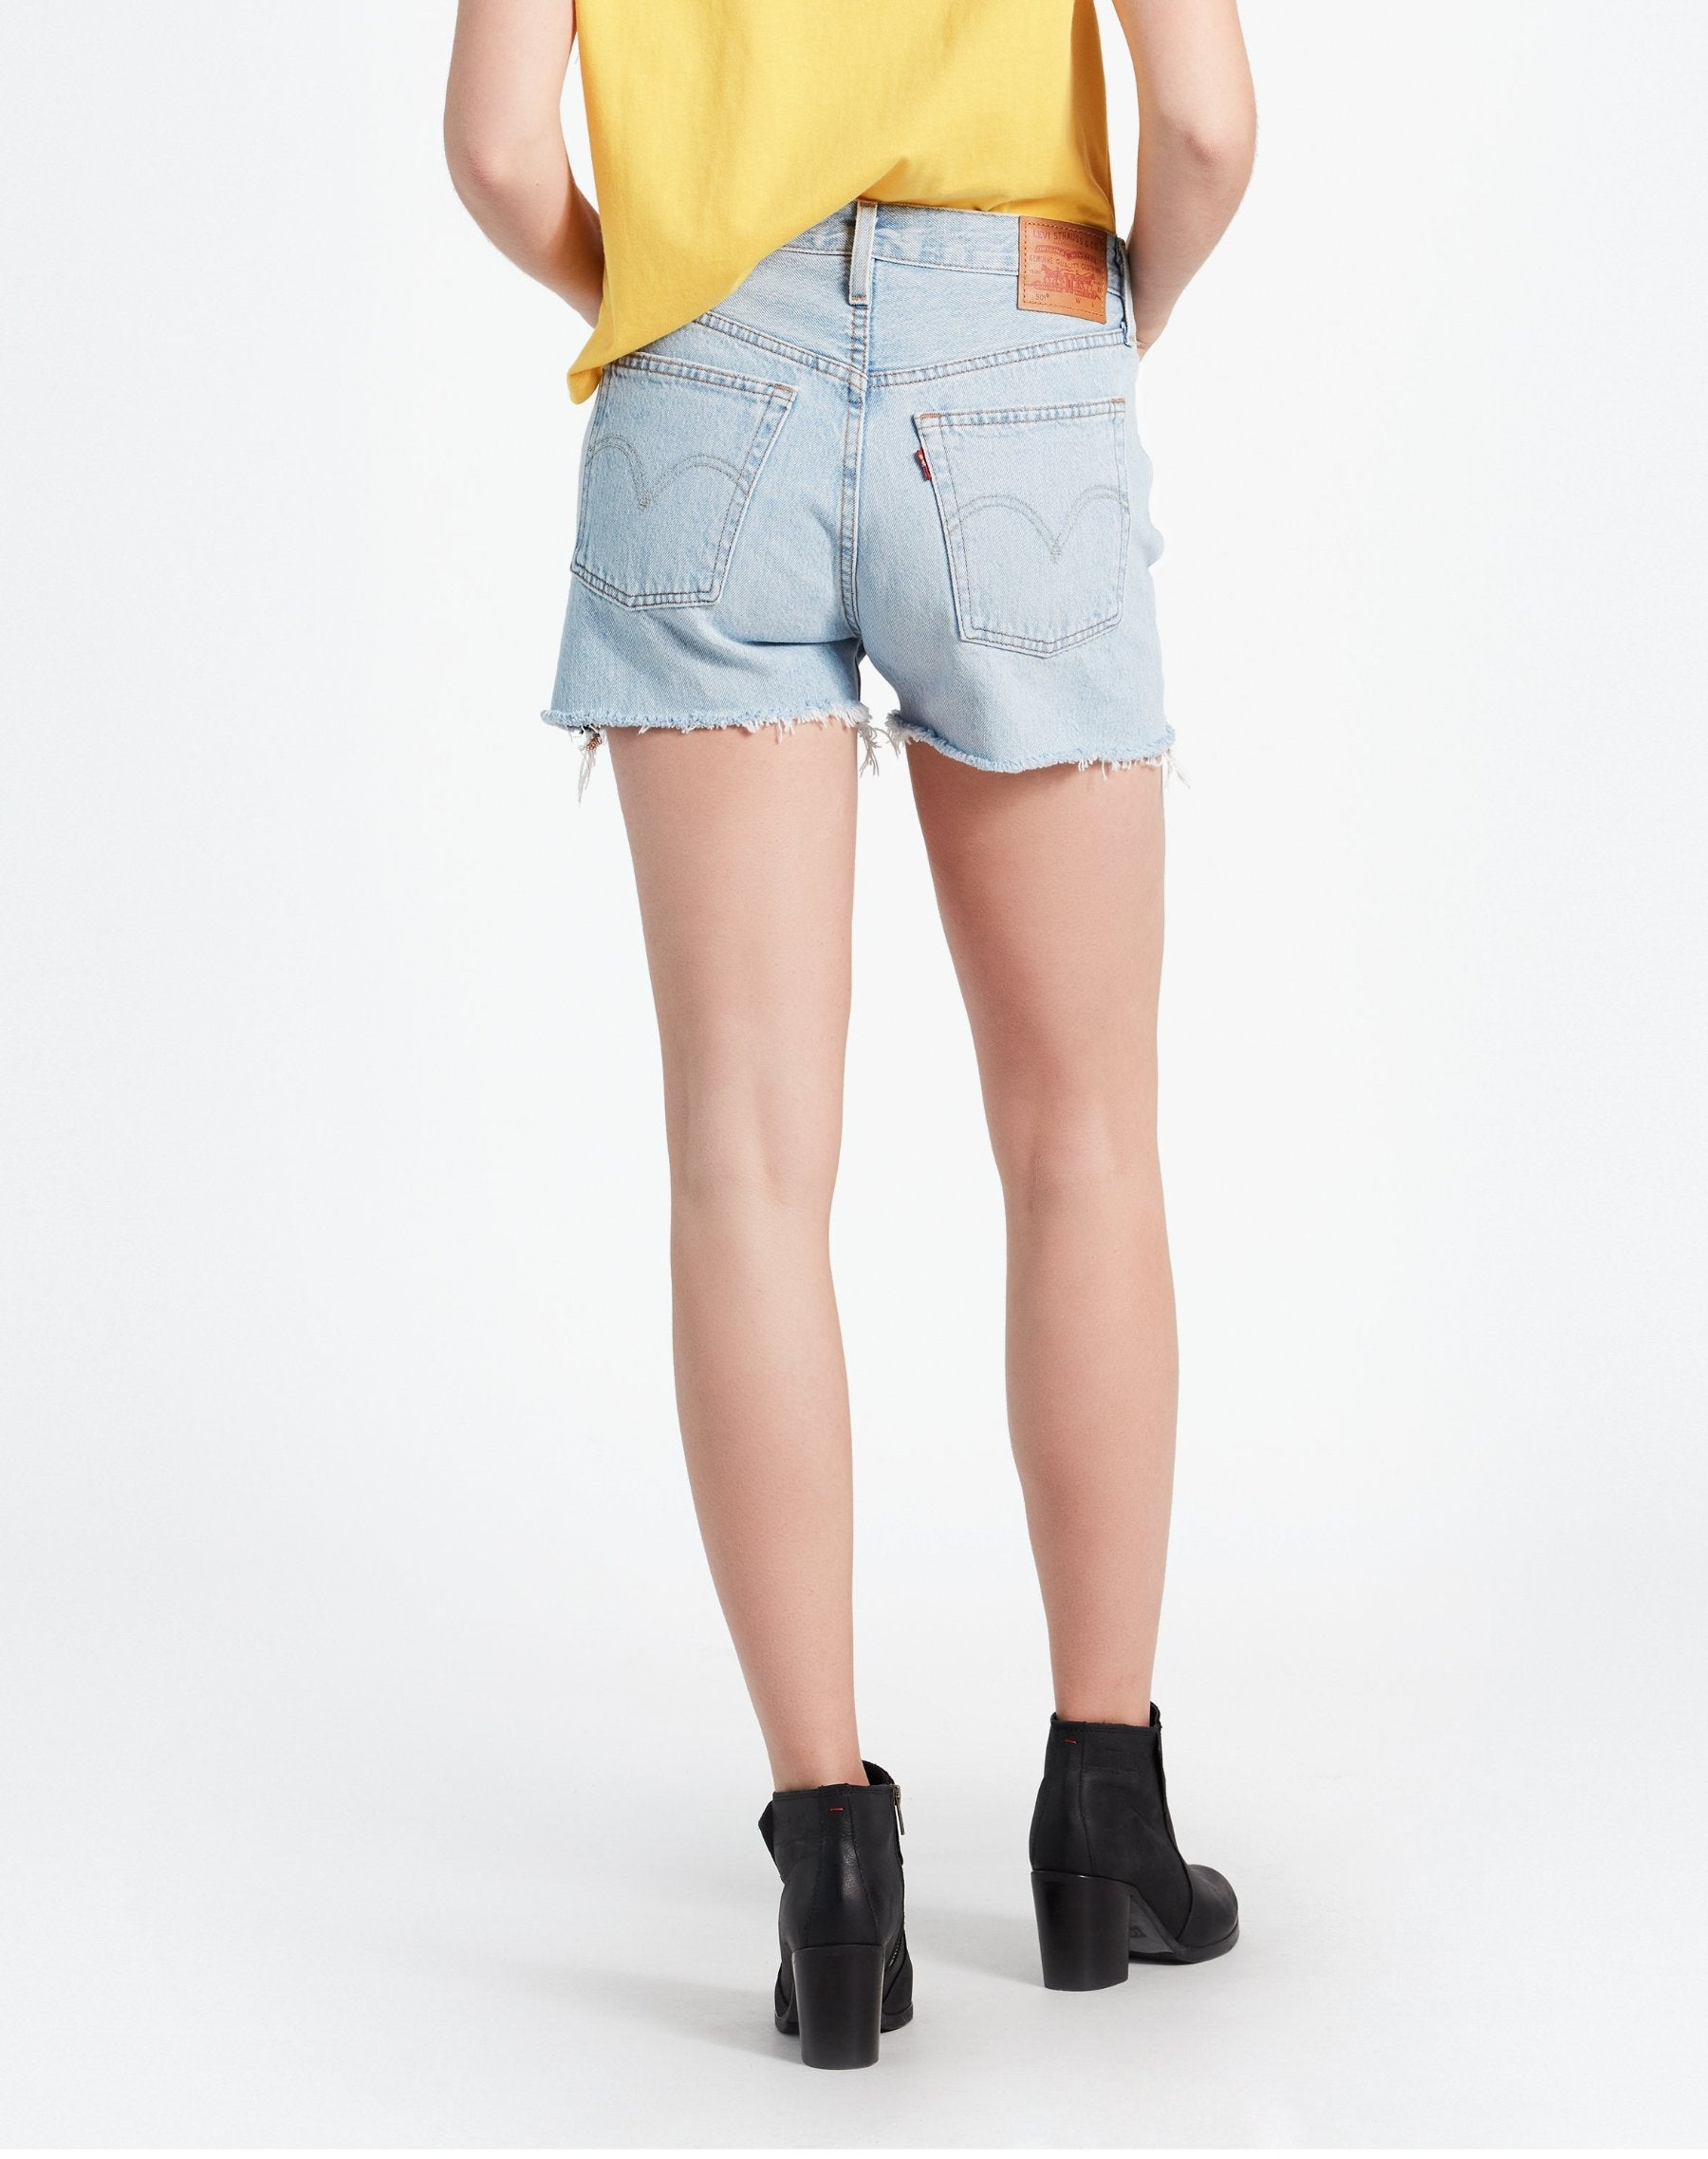 Photo of the back of the Weak in the Knees light denim shorts by Levi.